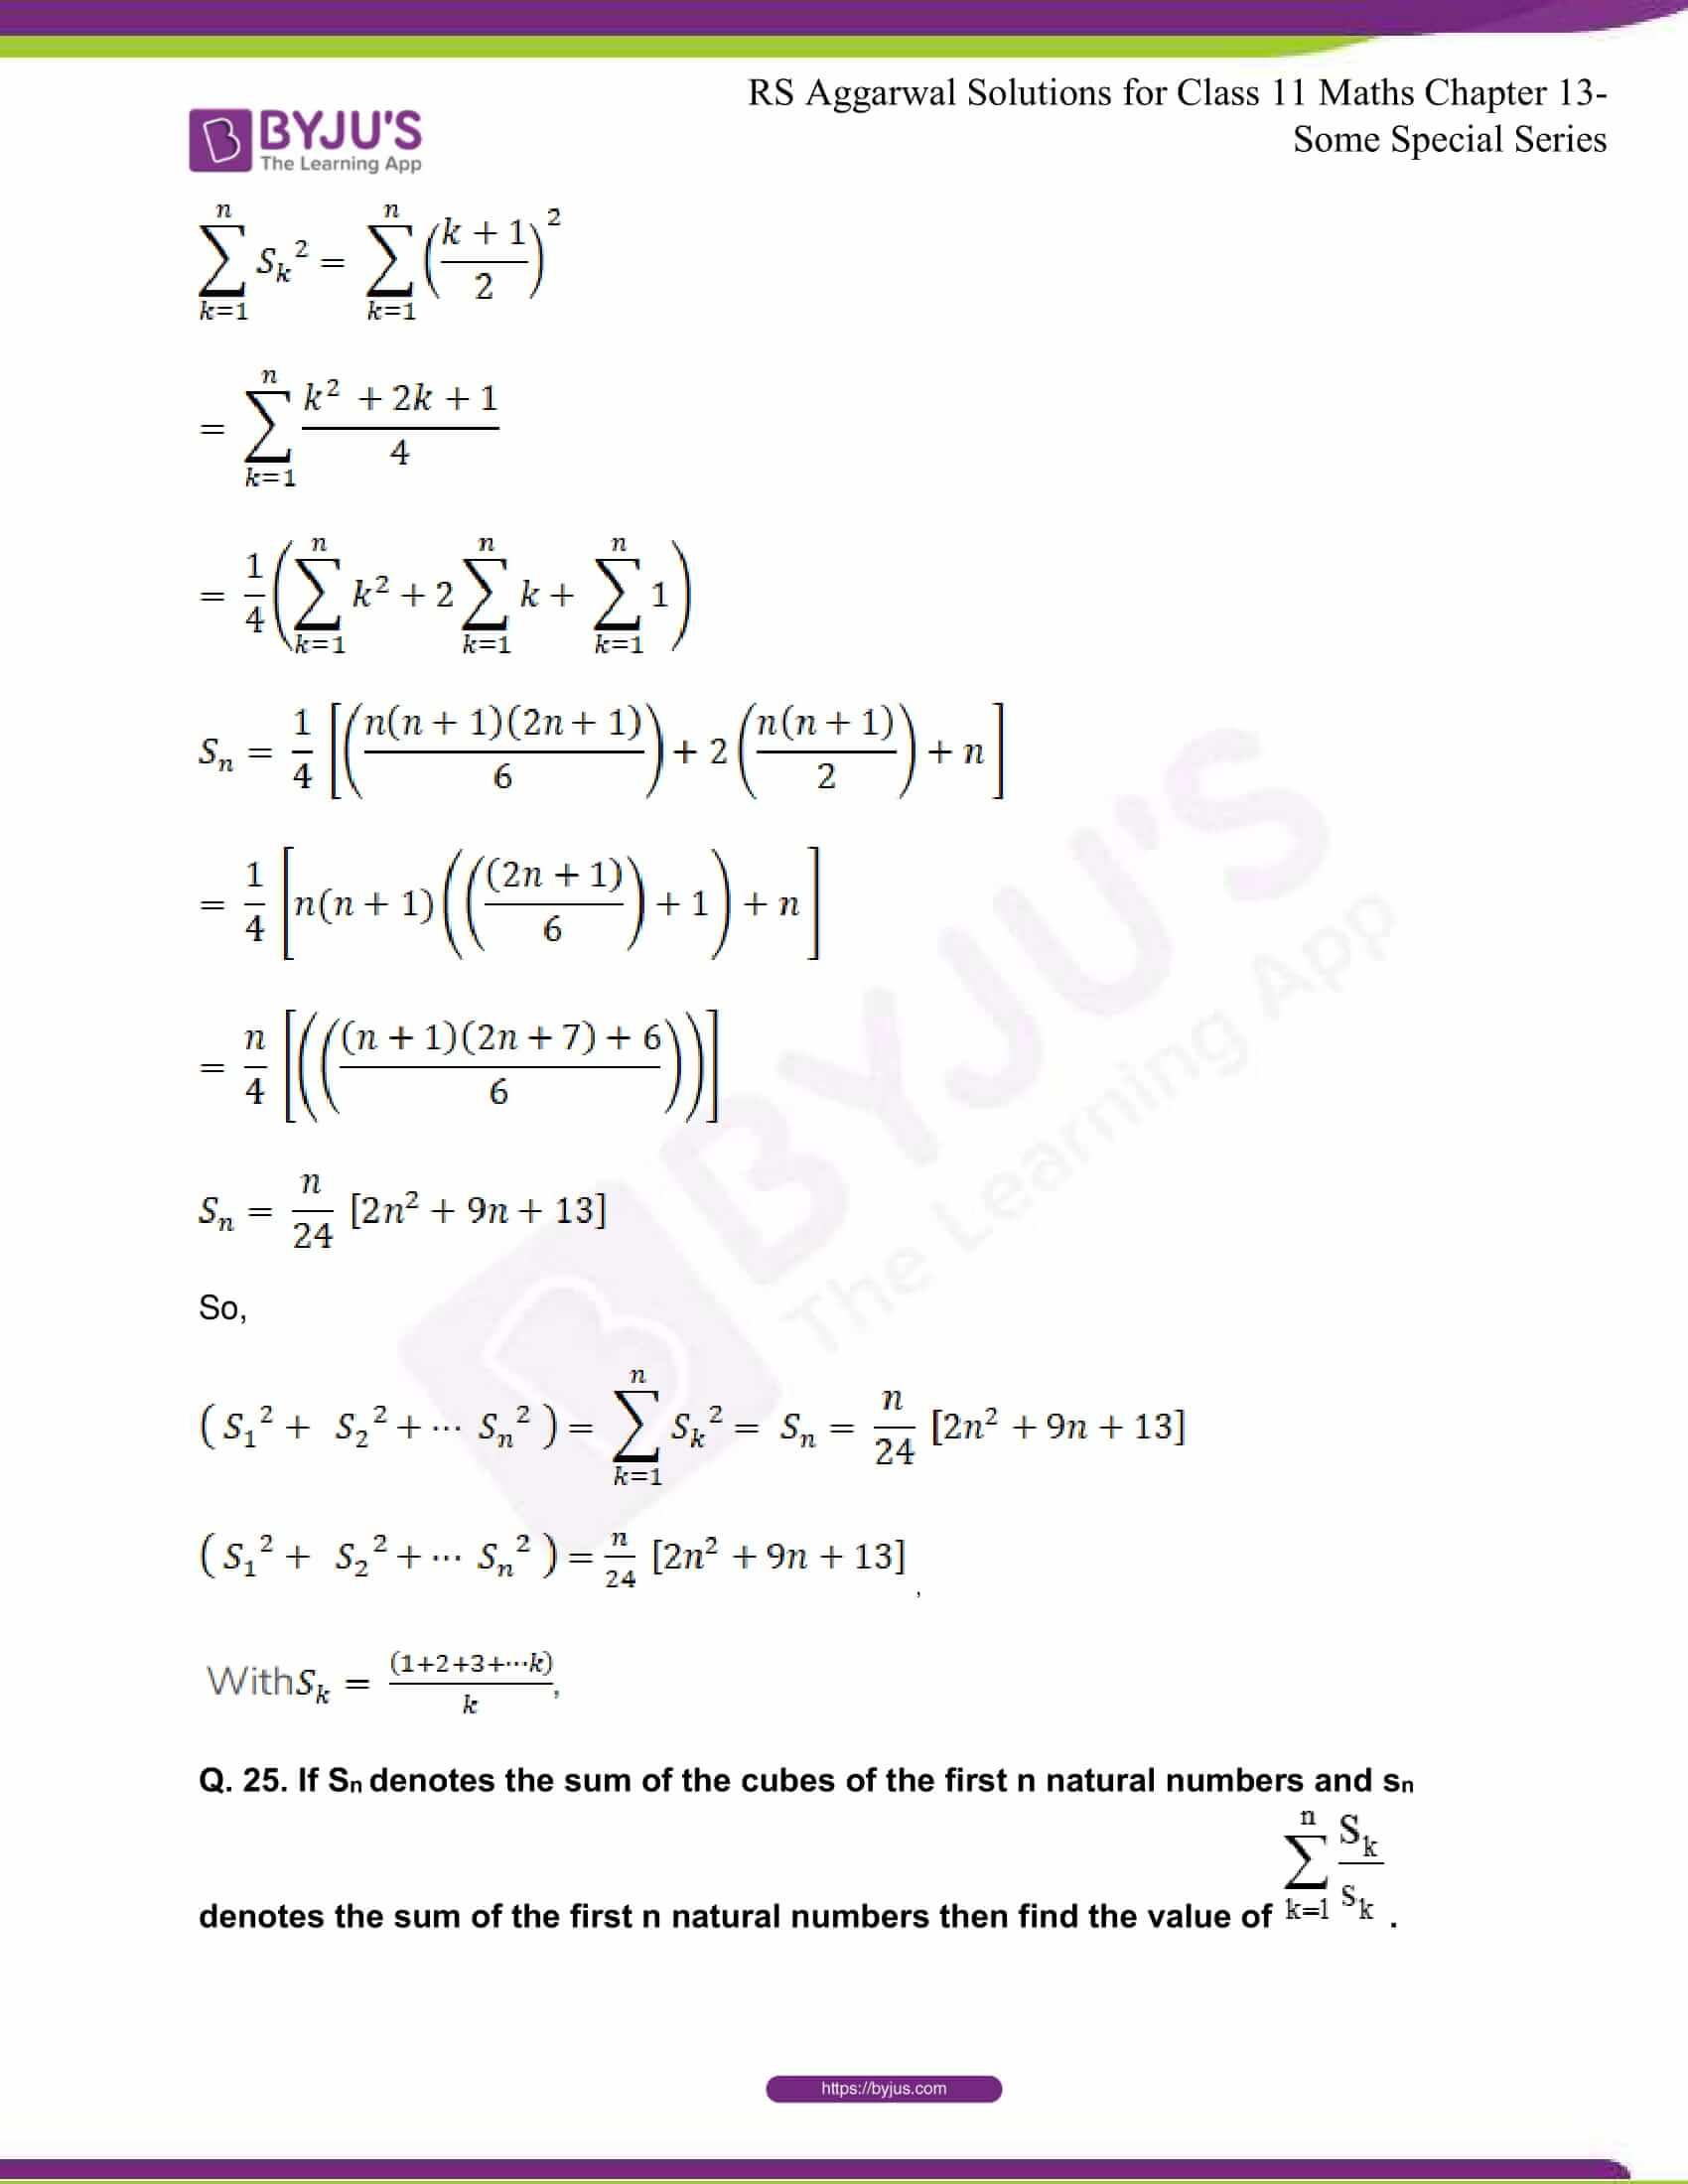 rsaggarwal solutions class 11 maths chapter 13 47